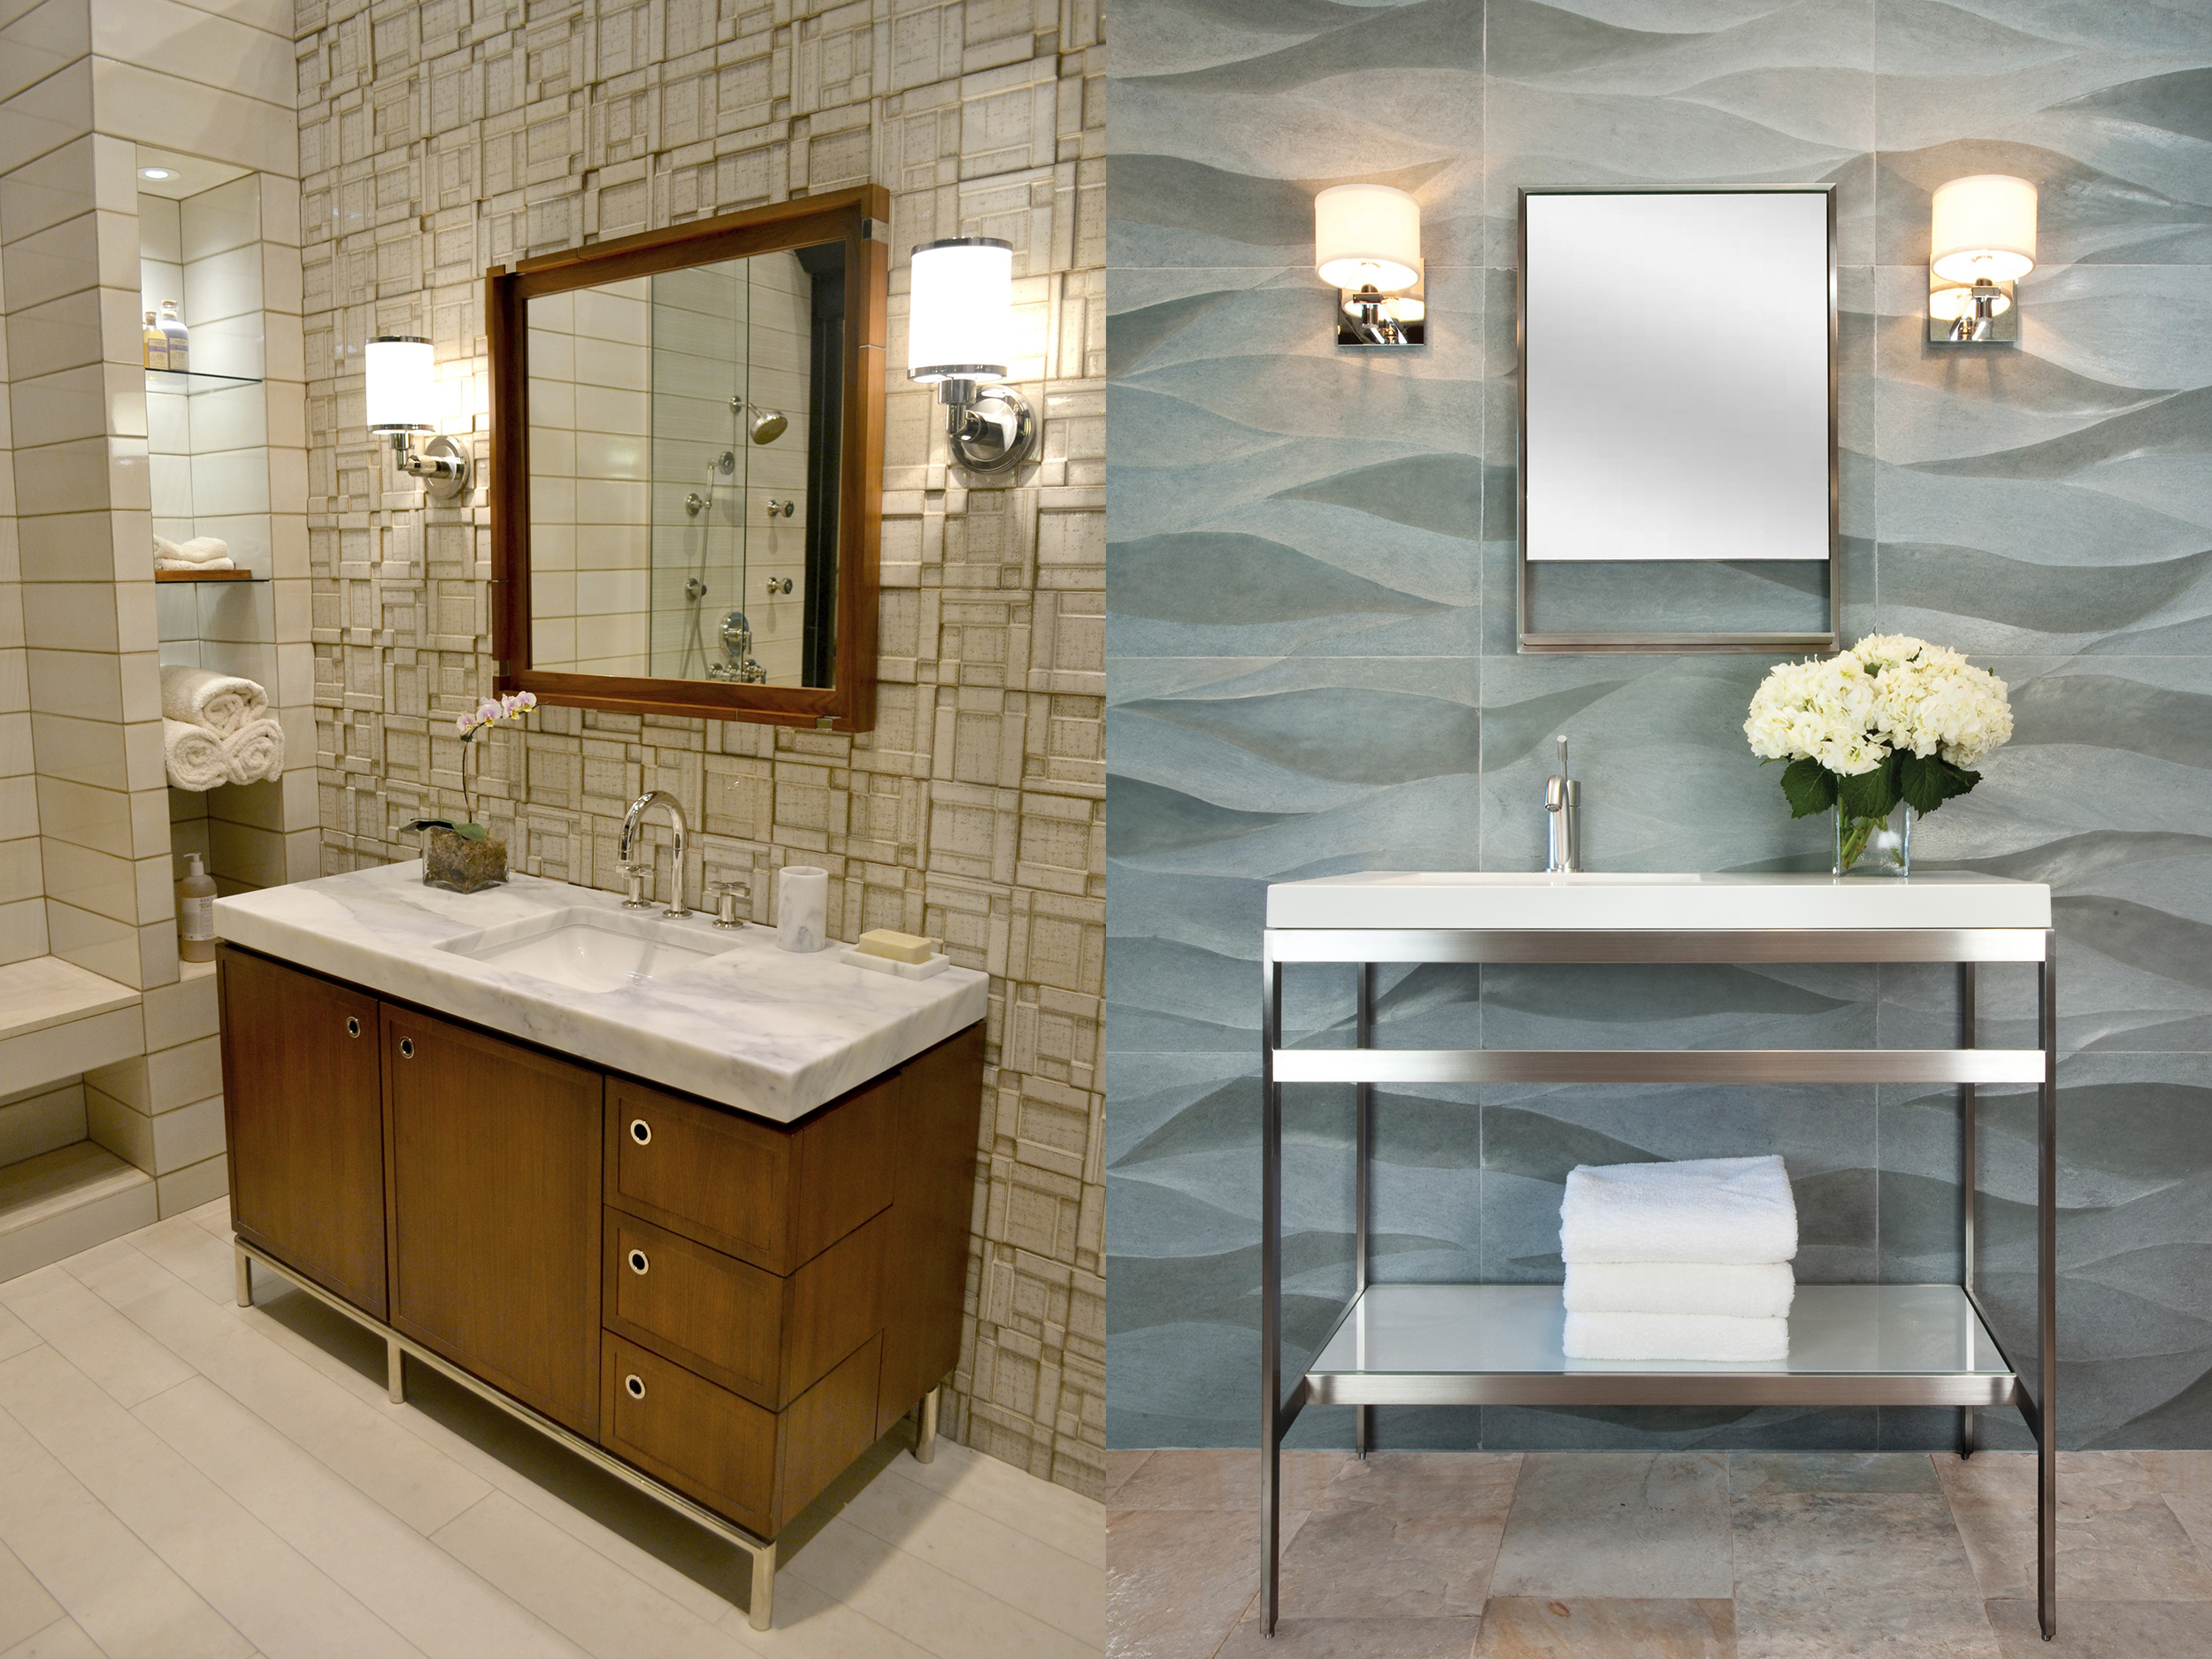 bathroom trends for 2017 - haskell's blog